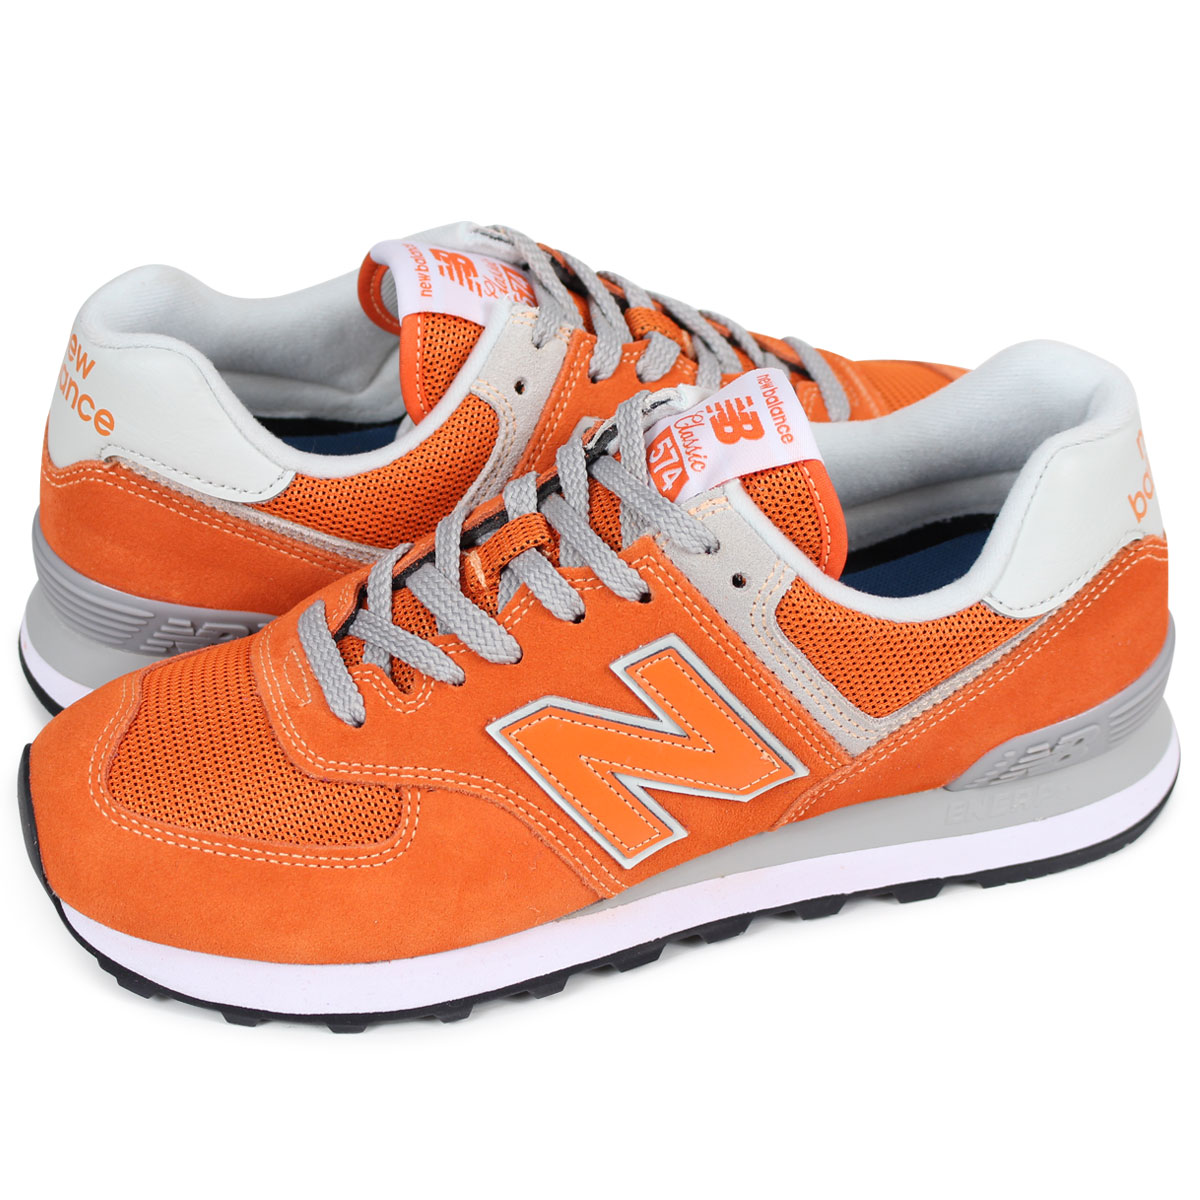 online store d740c 5af45 new balance ML574EVO New Balance 574 men's lady's sneakers D Wise orange